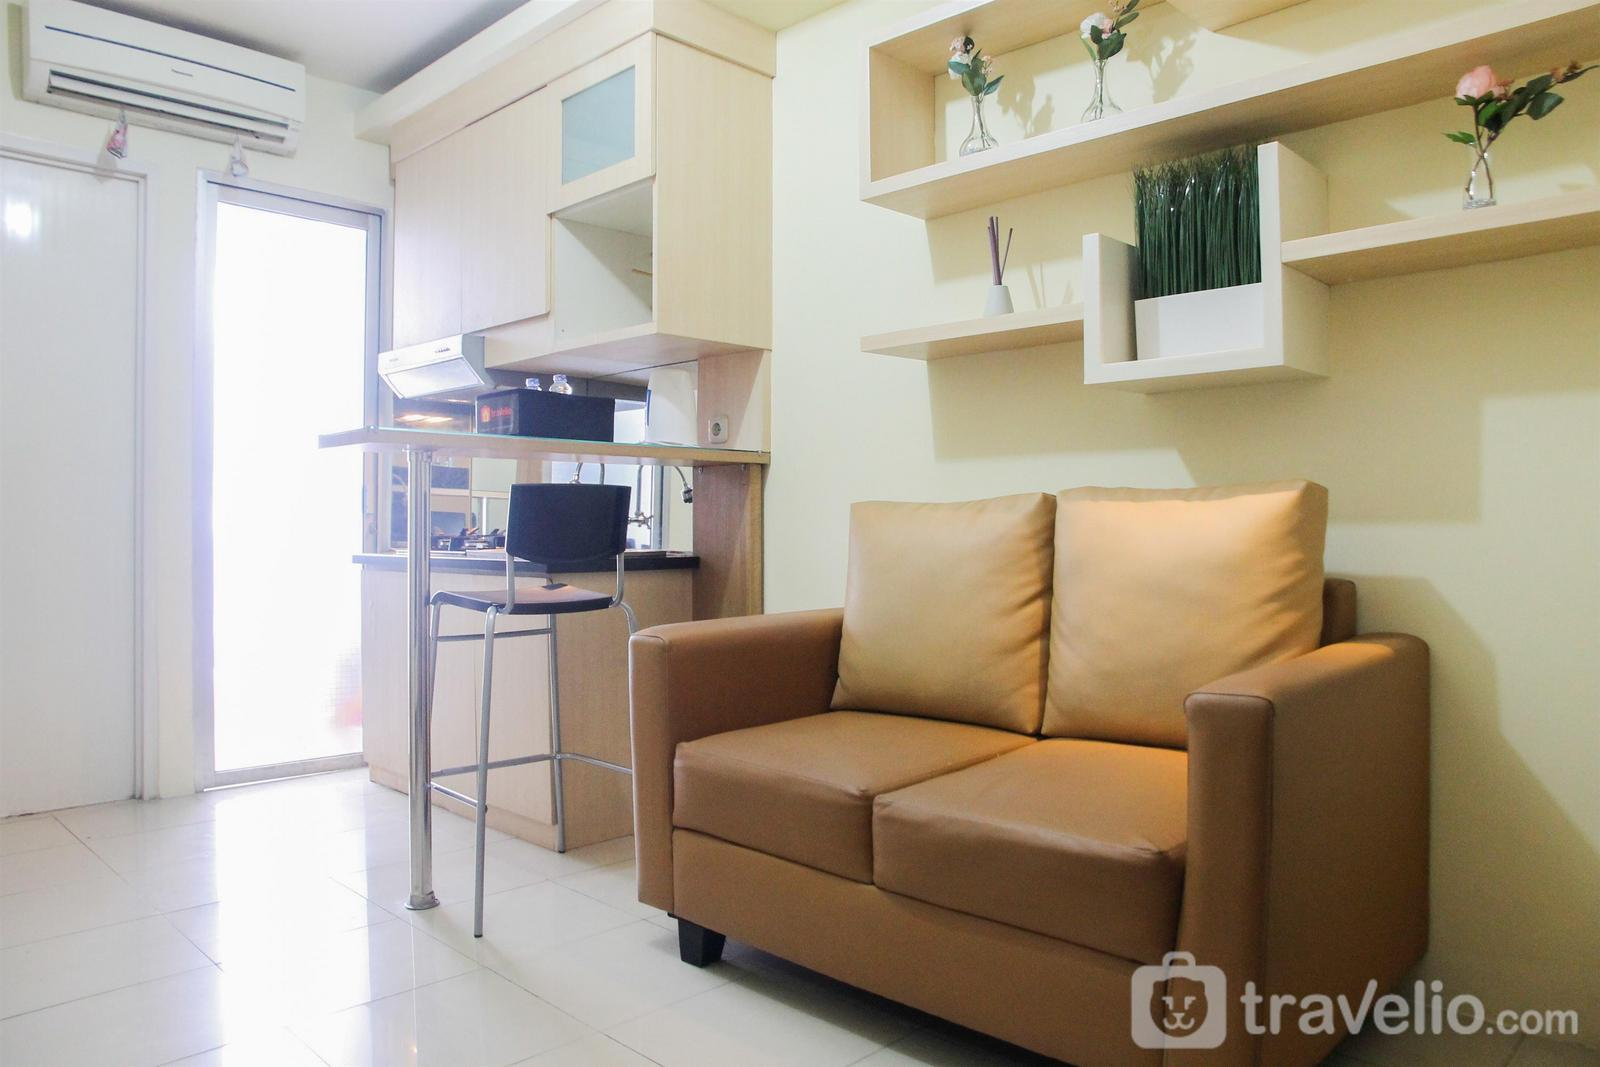 Green Palace Kalibata - Contemporary 2BR at Green Palace Kalibata City Apartment By Travelio